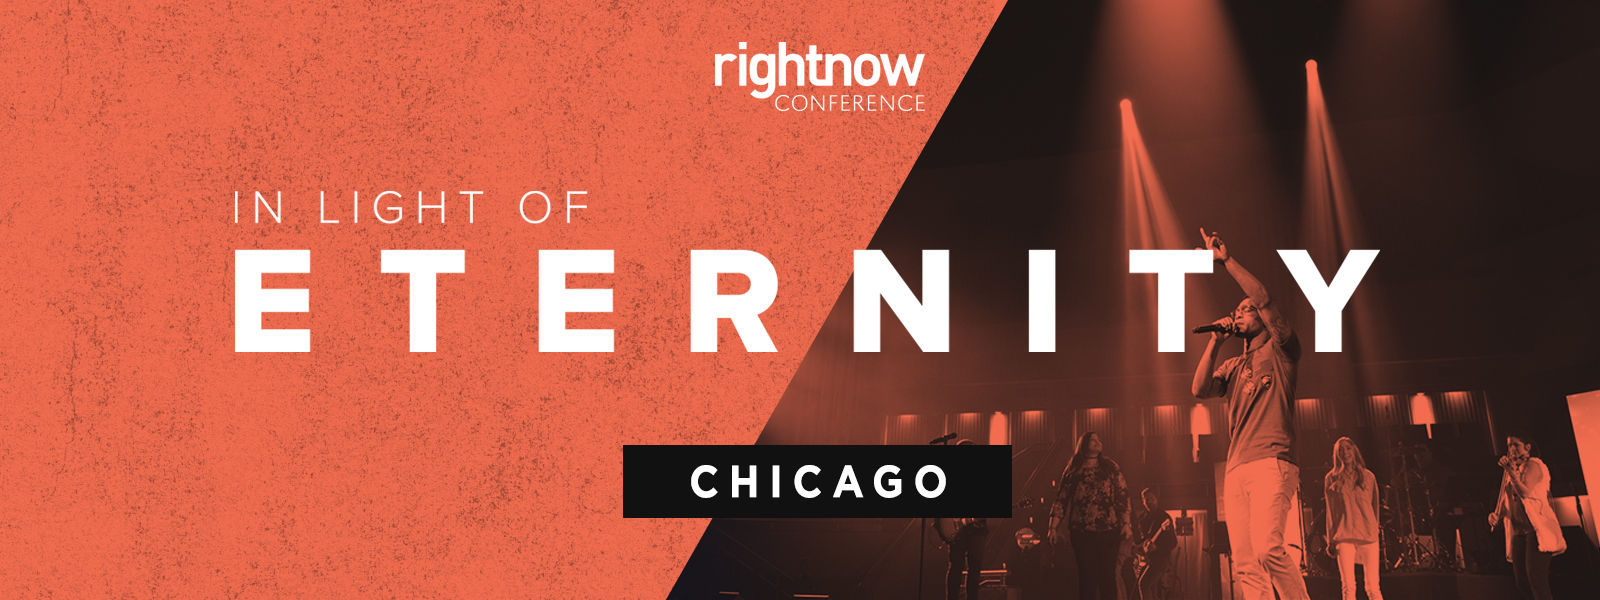 RightNow Conference 2018 (Chicago)